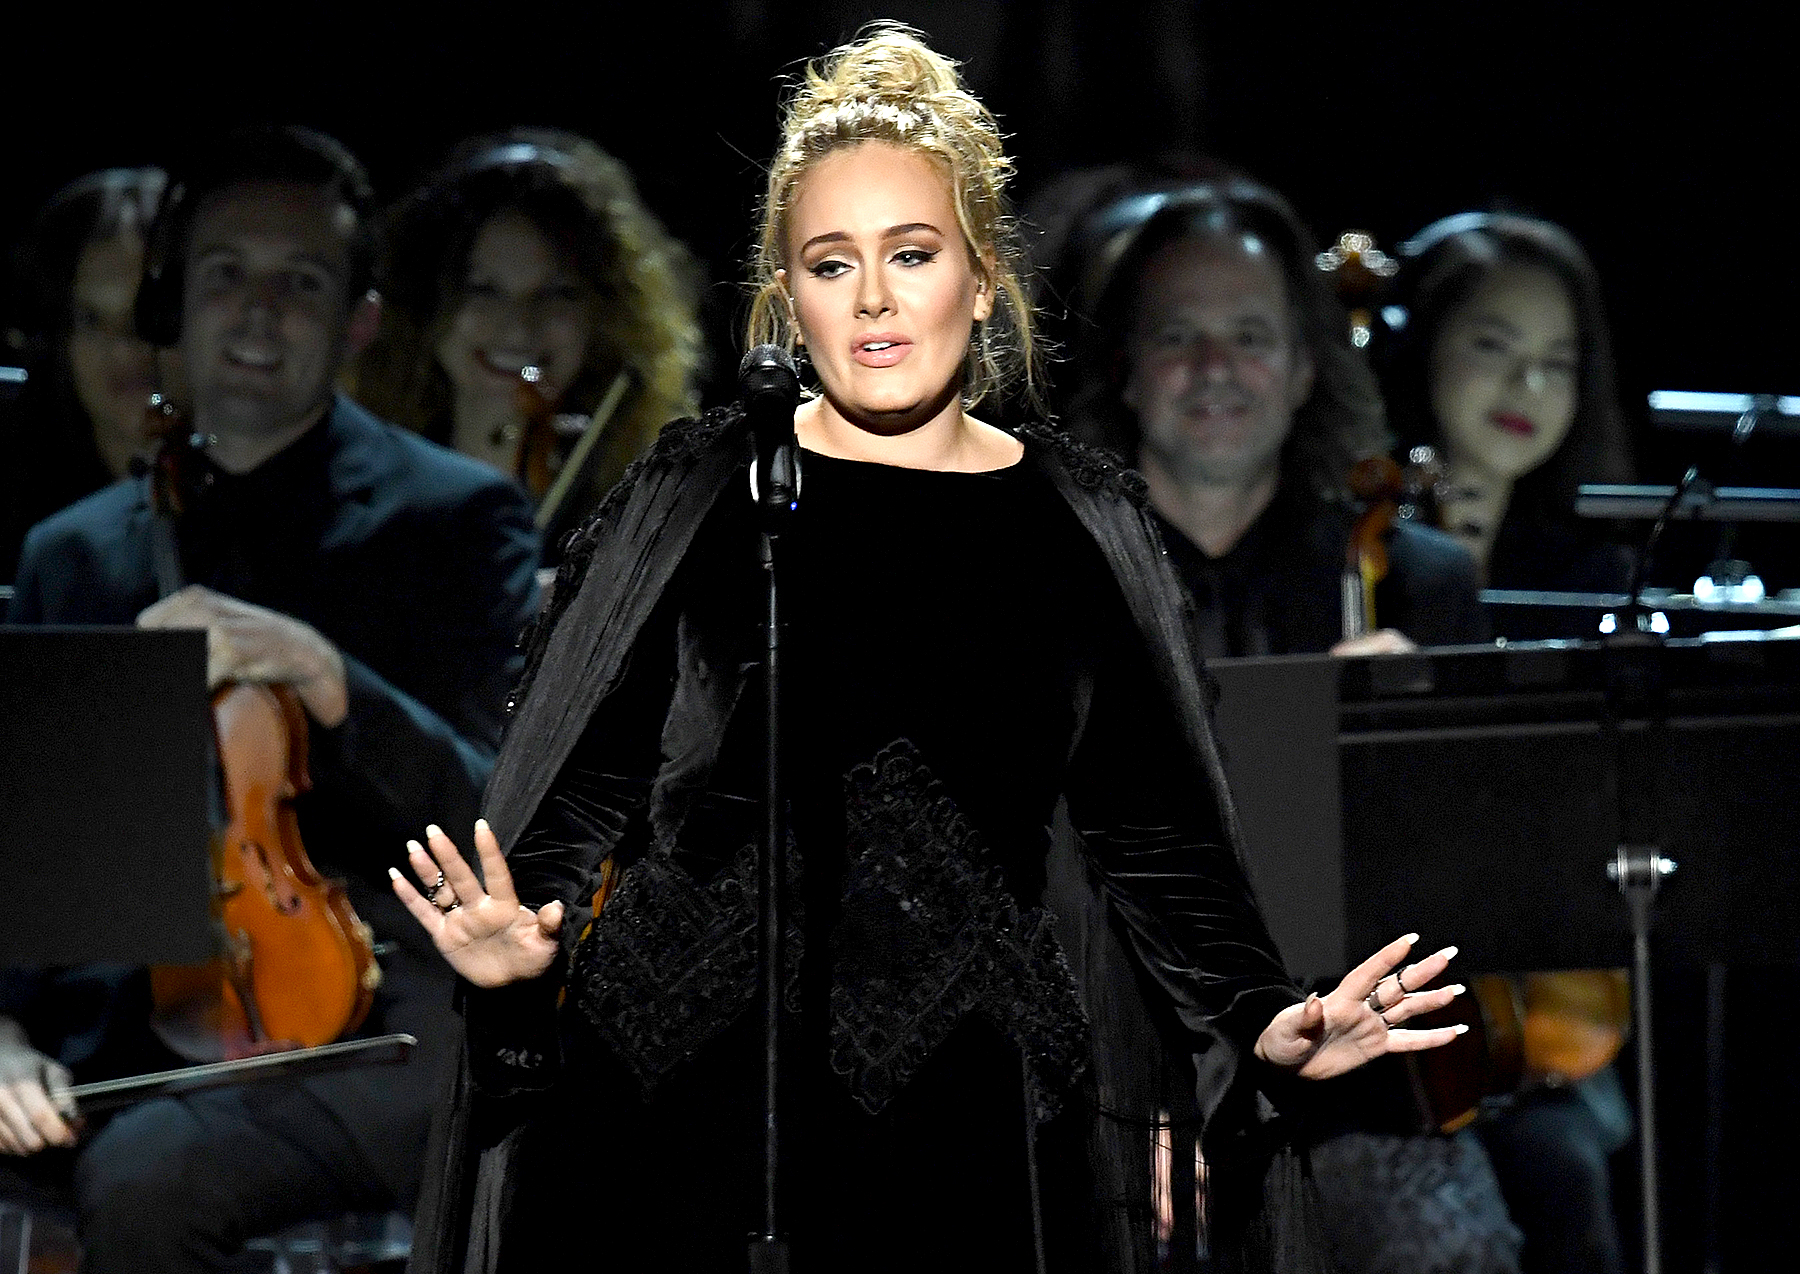 Adele performs onstage during The 59th GRAMMY Awards at STAPLES Center on February 12, 2017 in Los Angeles, California.